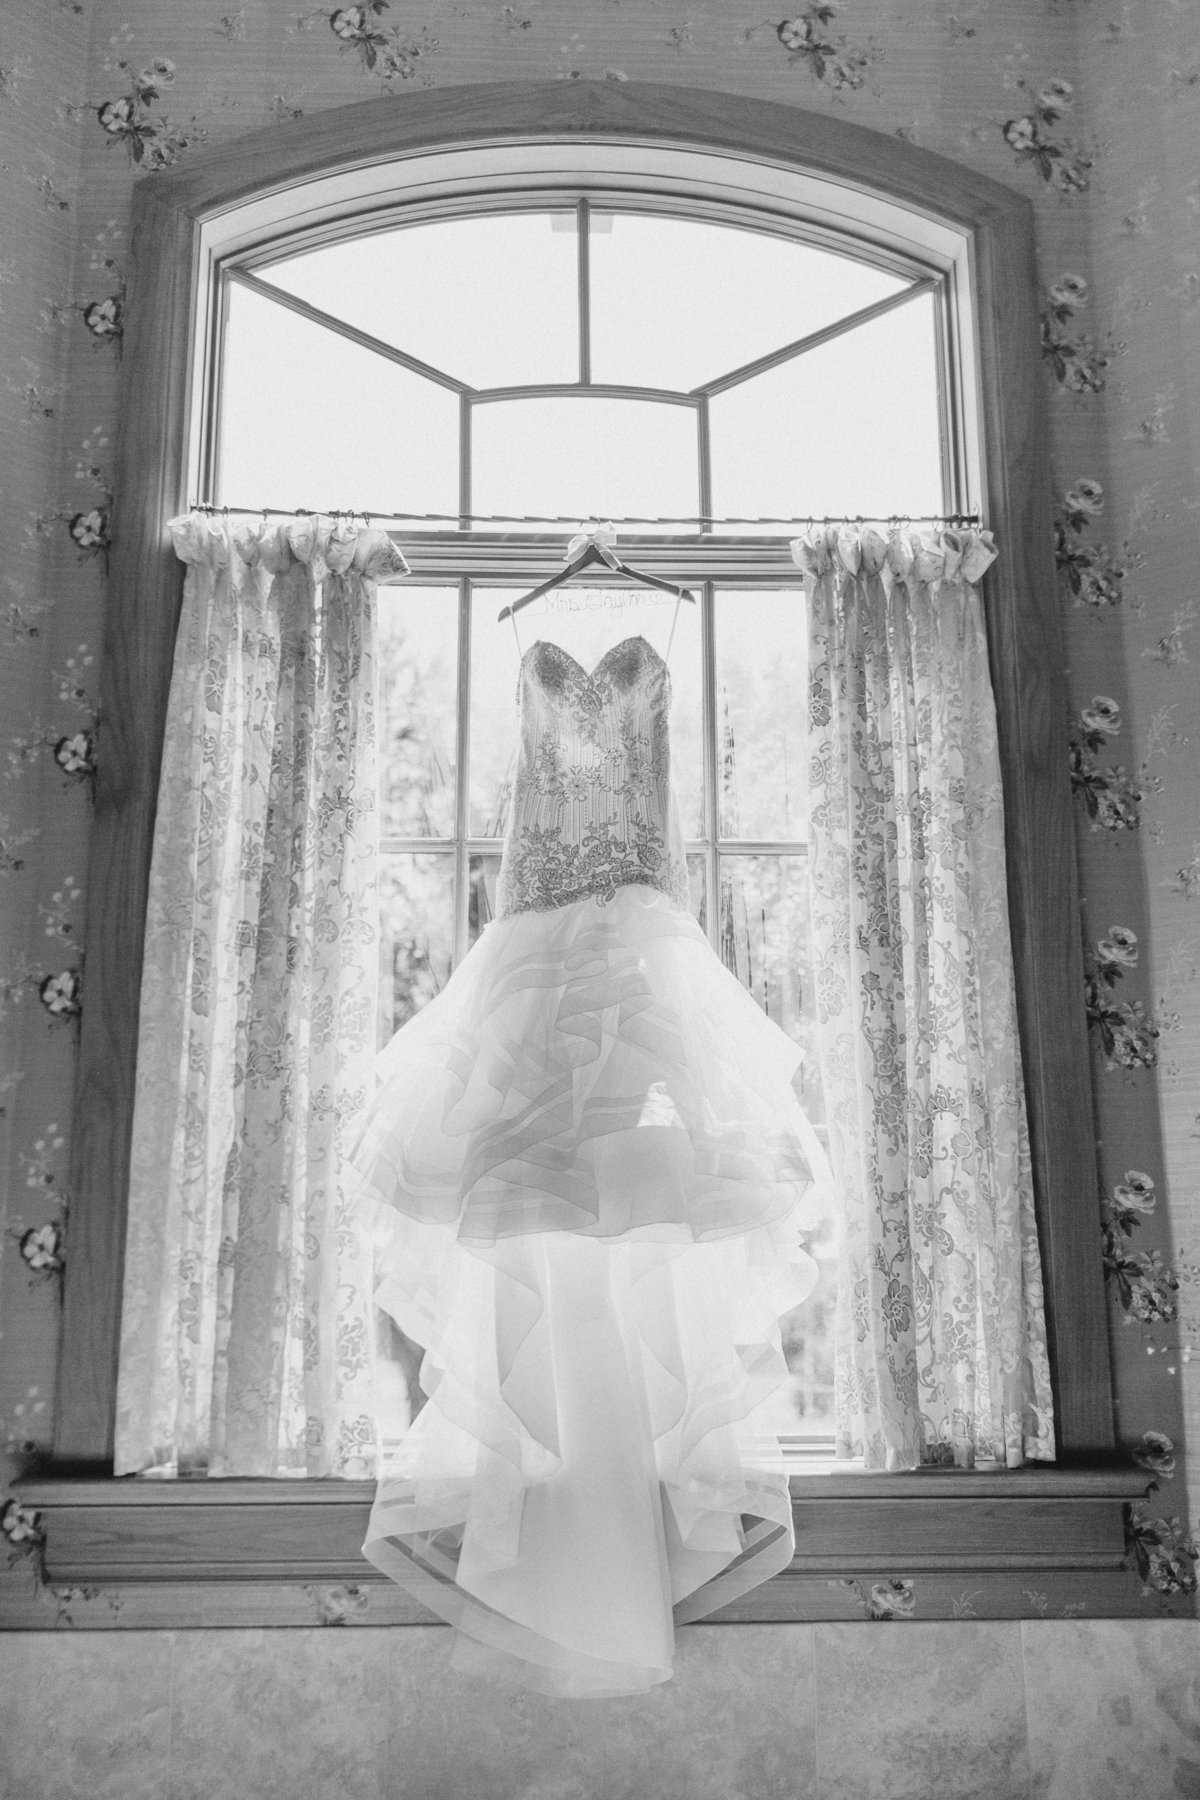 High-Pointe-Mansion-Wedding-Photography-Oklahoma-City-Wedding-Photographer-Holly-Felts-Photography-19